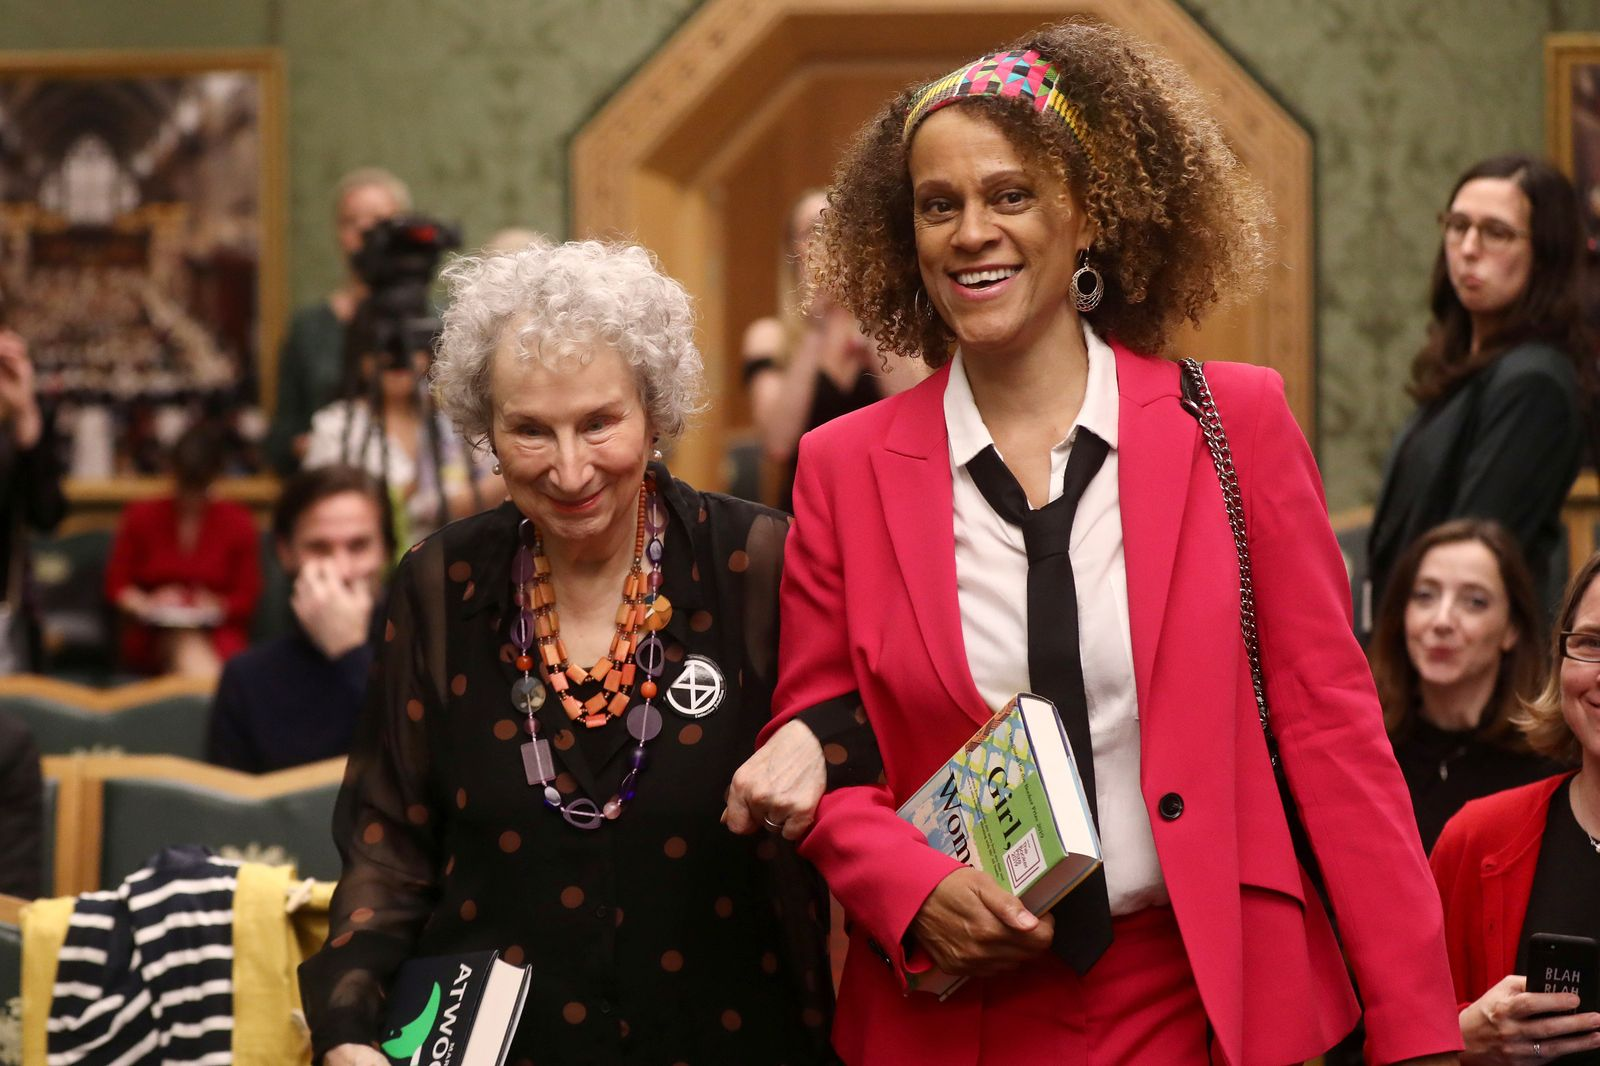 Margaret Atwood and Bernardine Evaristo jointly win the Booker Prize for Fiction 2019 at the Guildhall in London